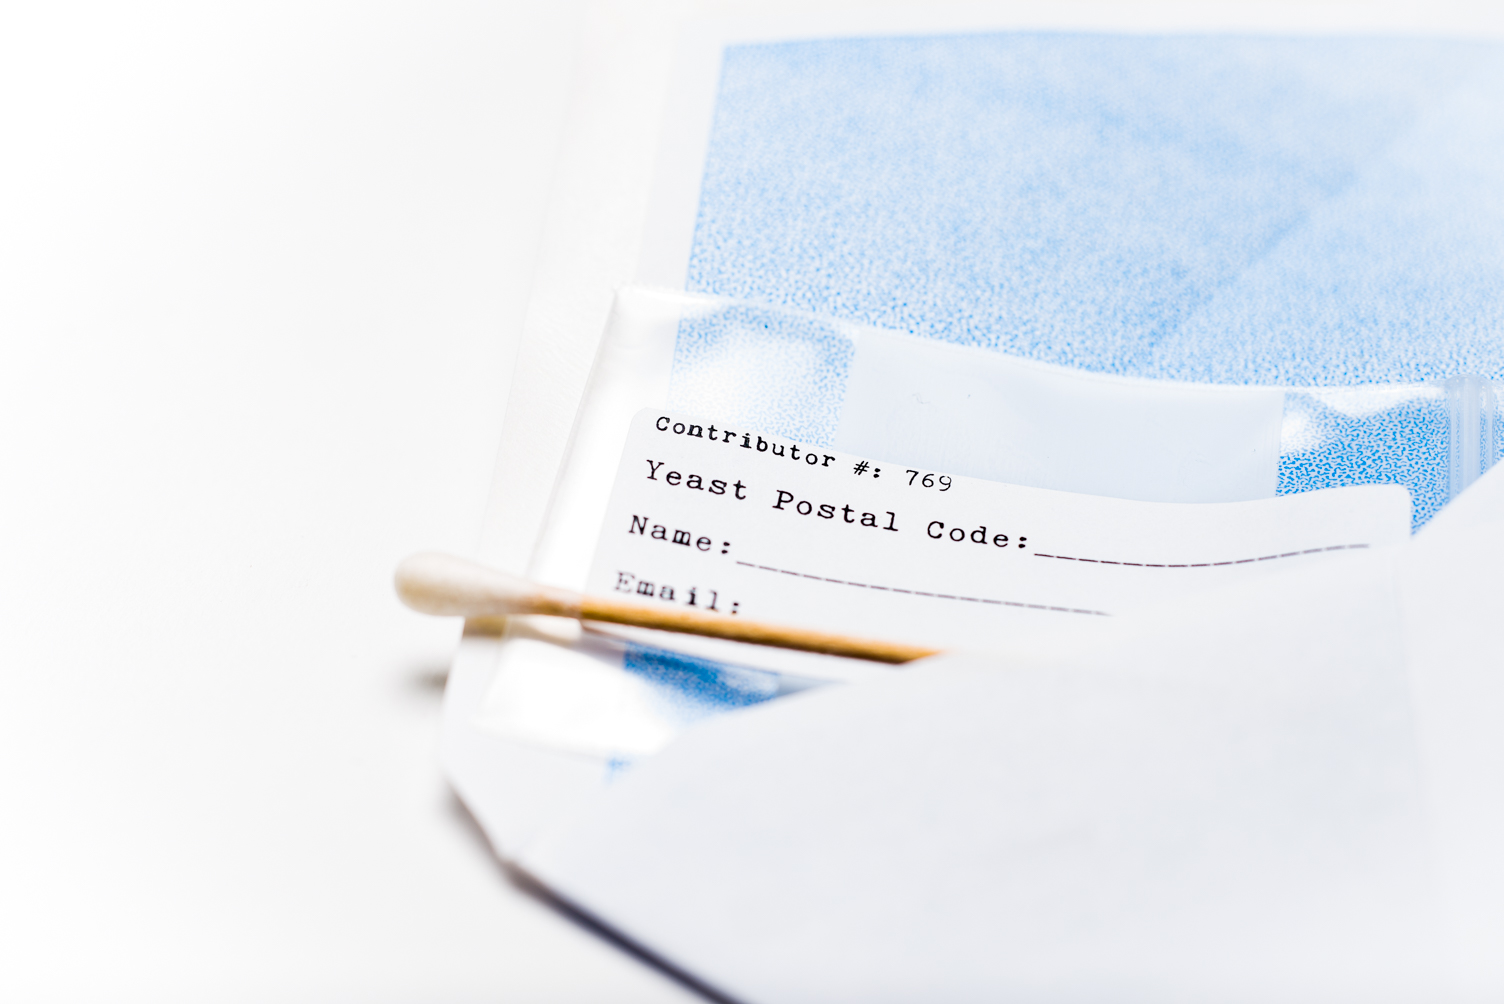 Swabs can be sent back to Bootleg Biology's lab via a self-addressed, stamped envelope included in the company's kit // Photo by Kevin Kramer, The Growler